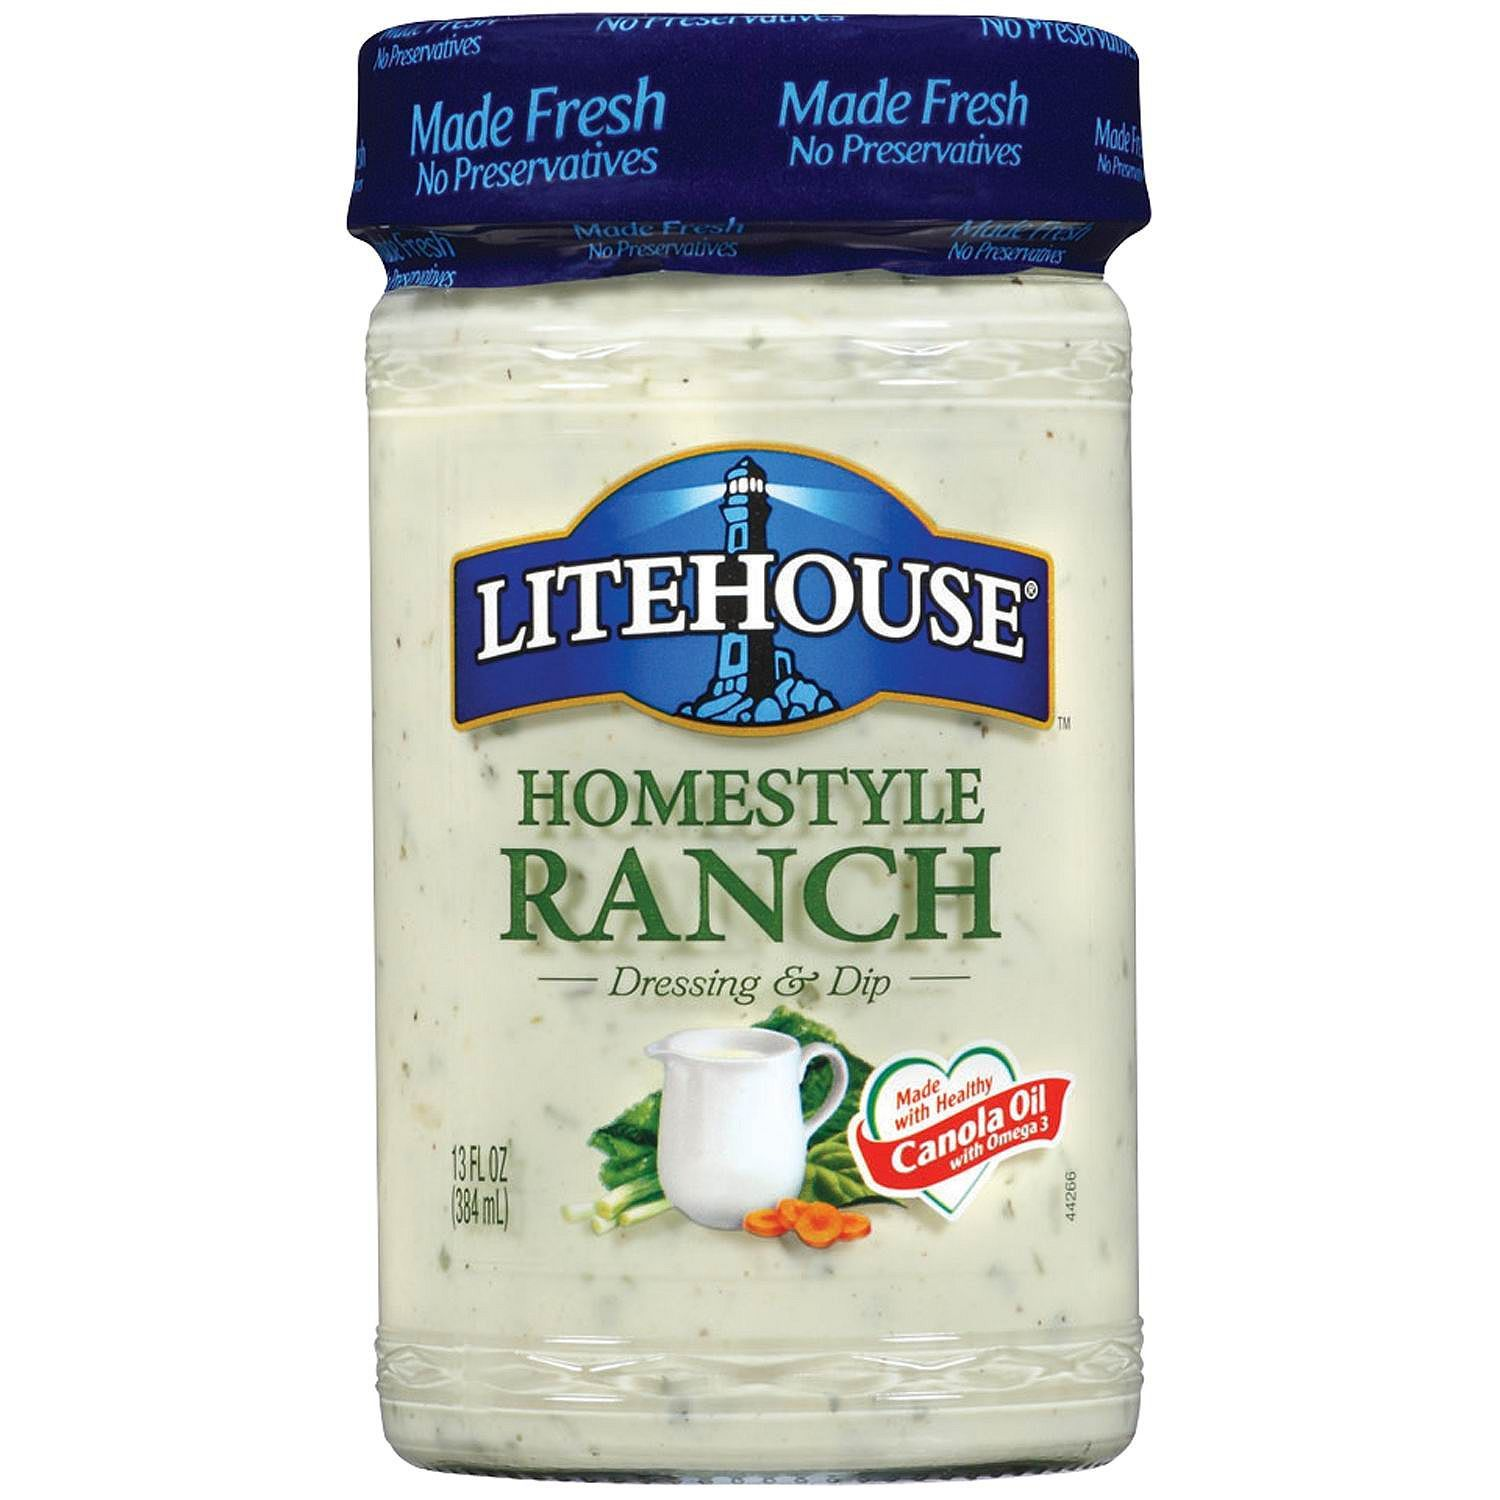 Litehouse dressing coupons